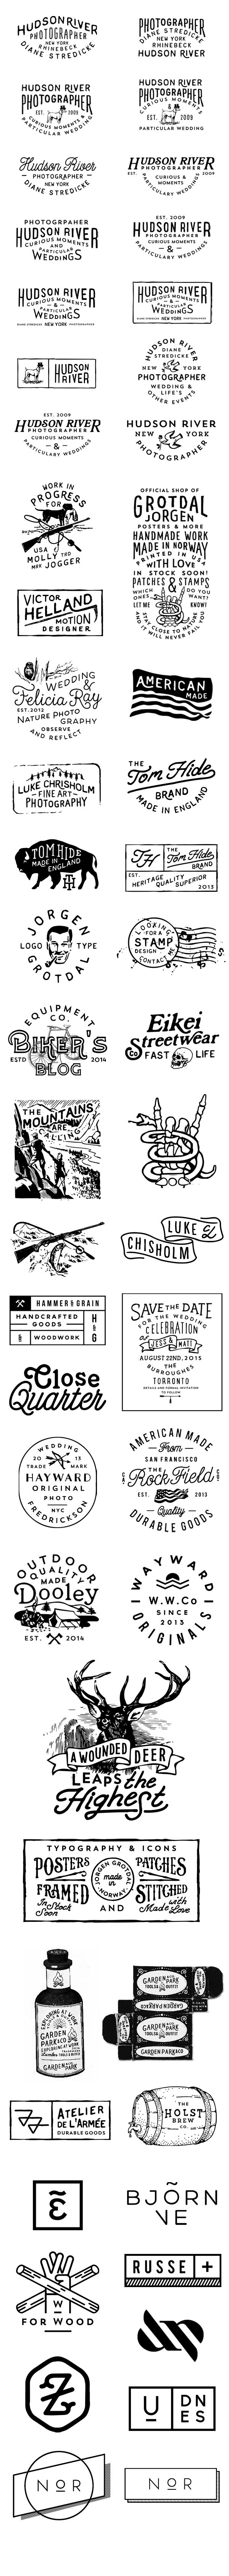 Hand drawn type and logo types and badges. Vintage look and feel. great stuff!